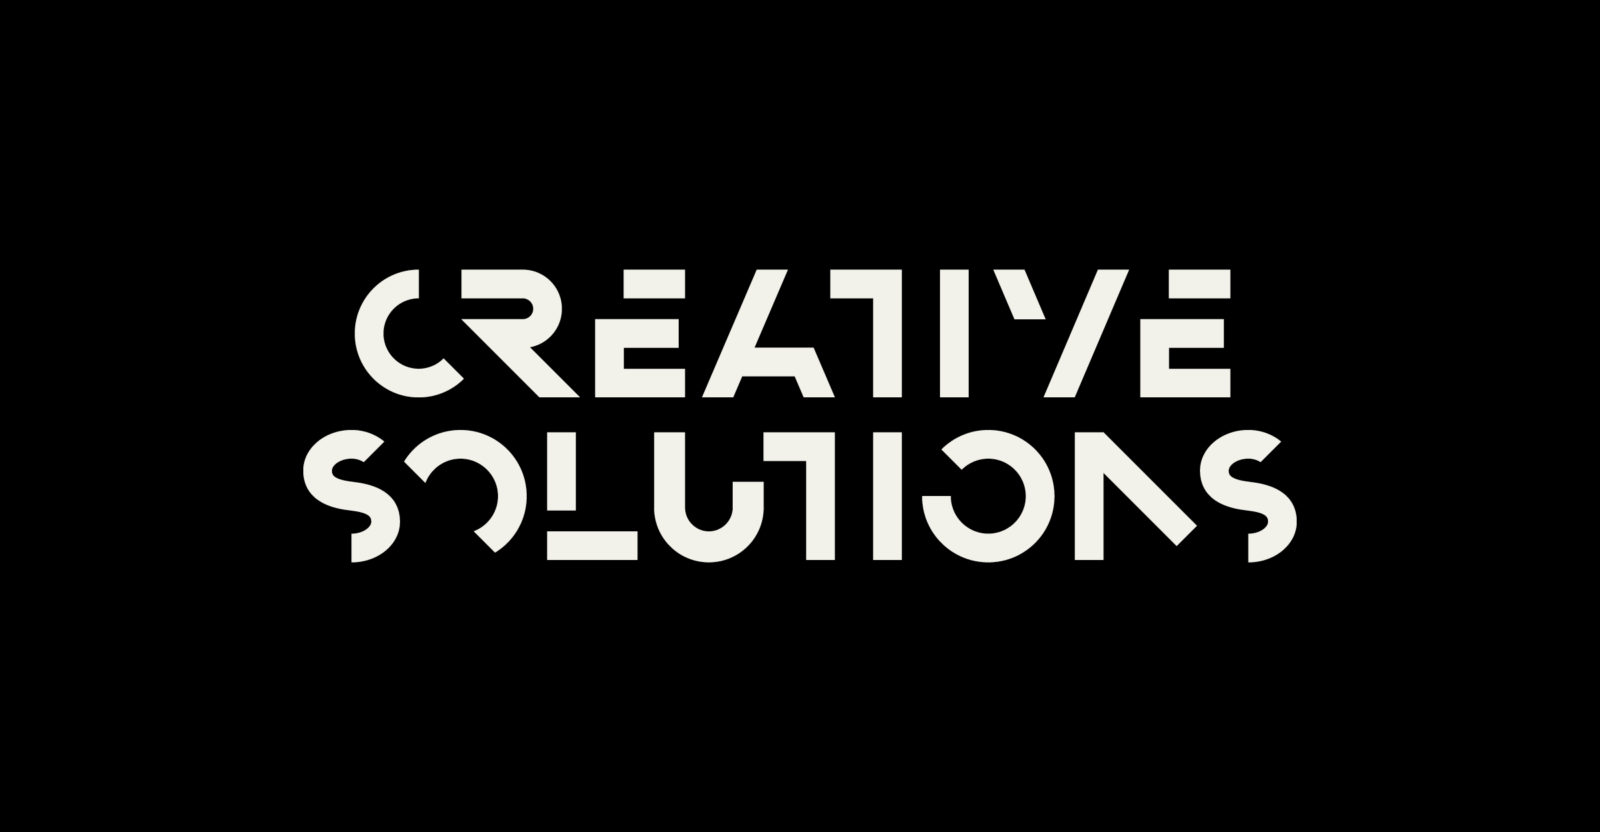 Creative Solutions